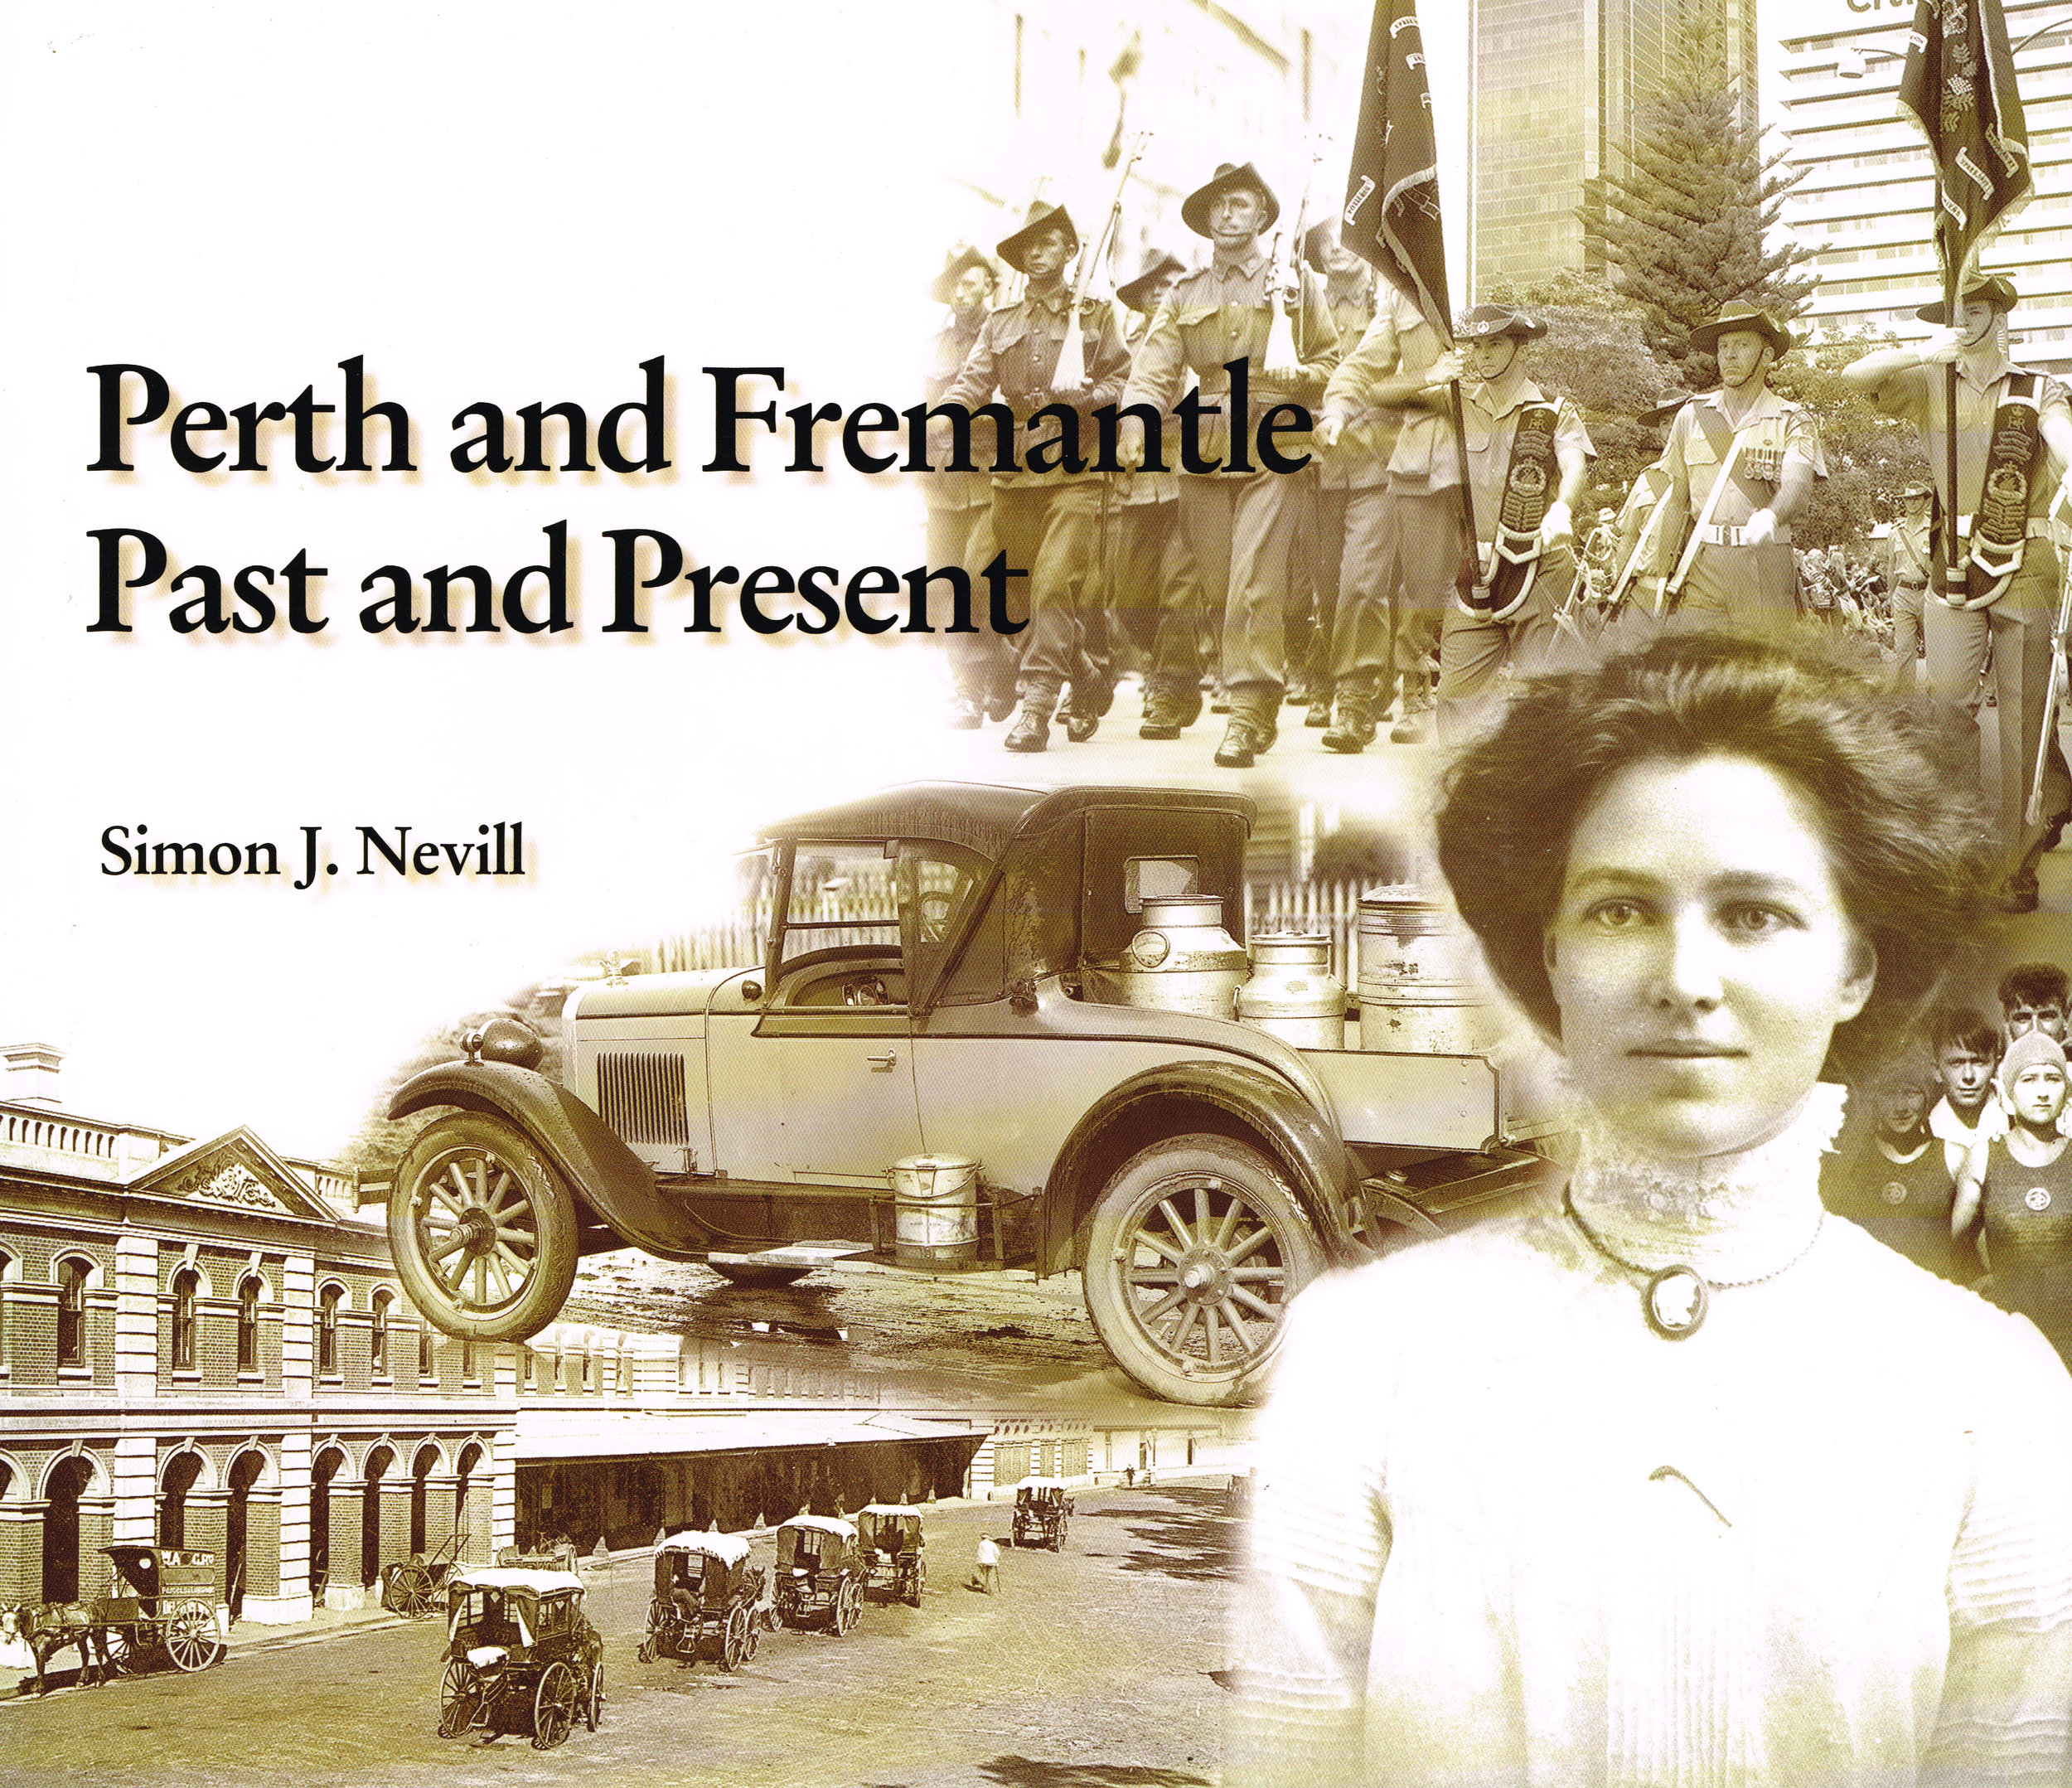 Perth and Fremantle Past and Present  Simon J. Nevill